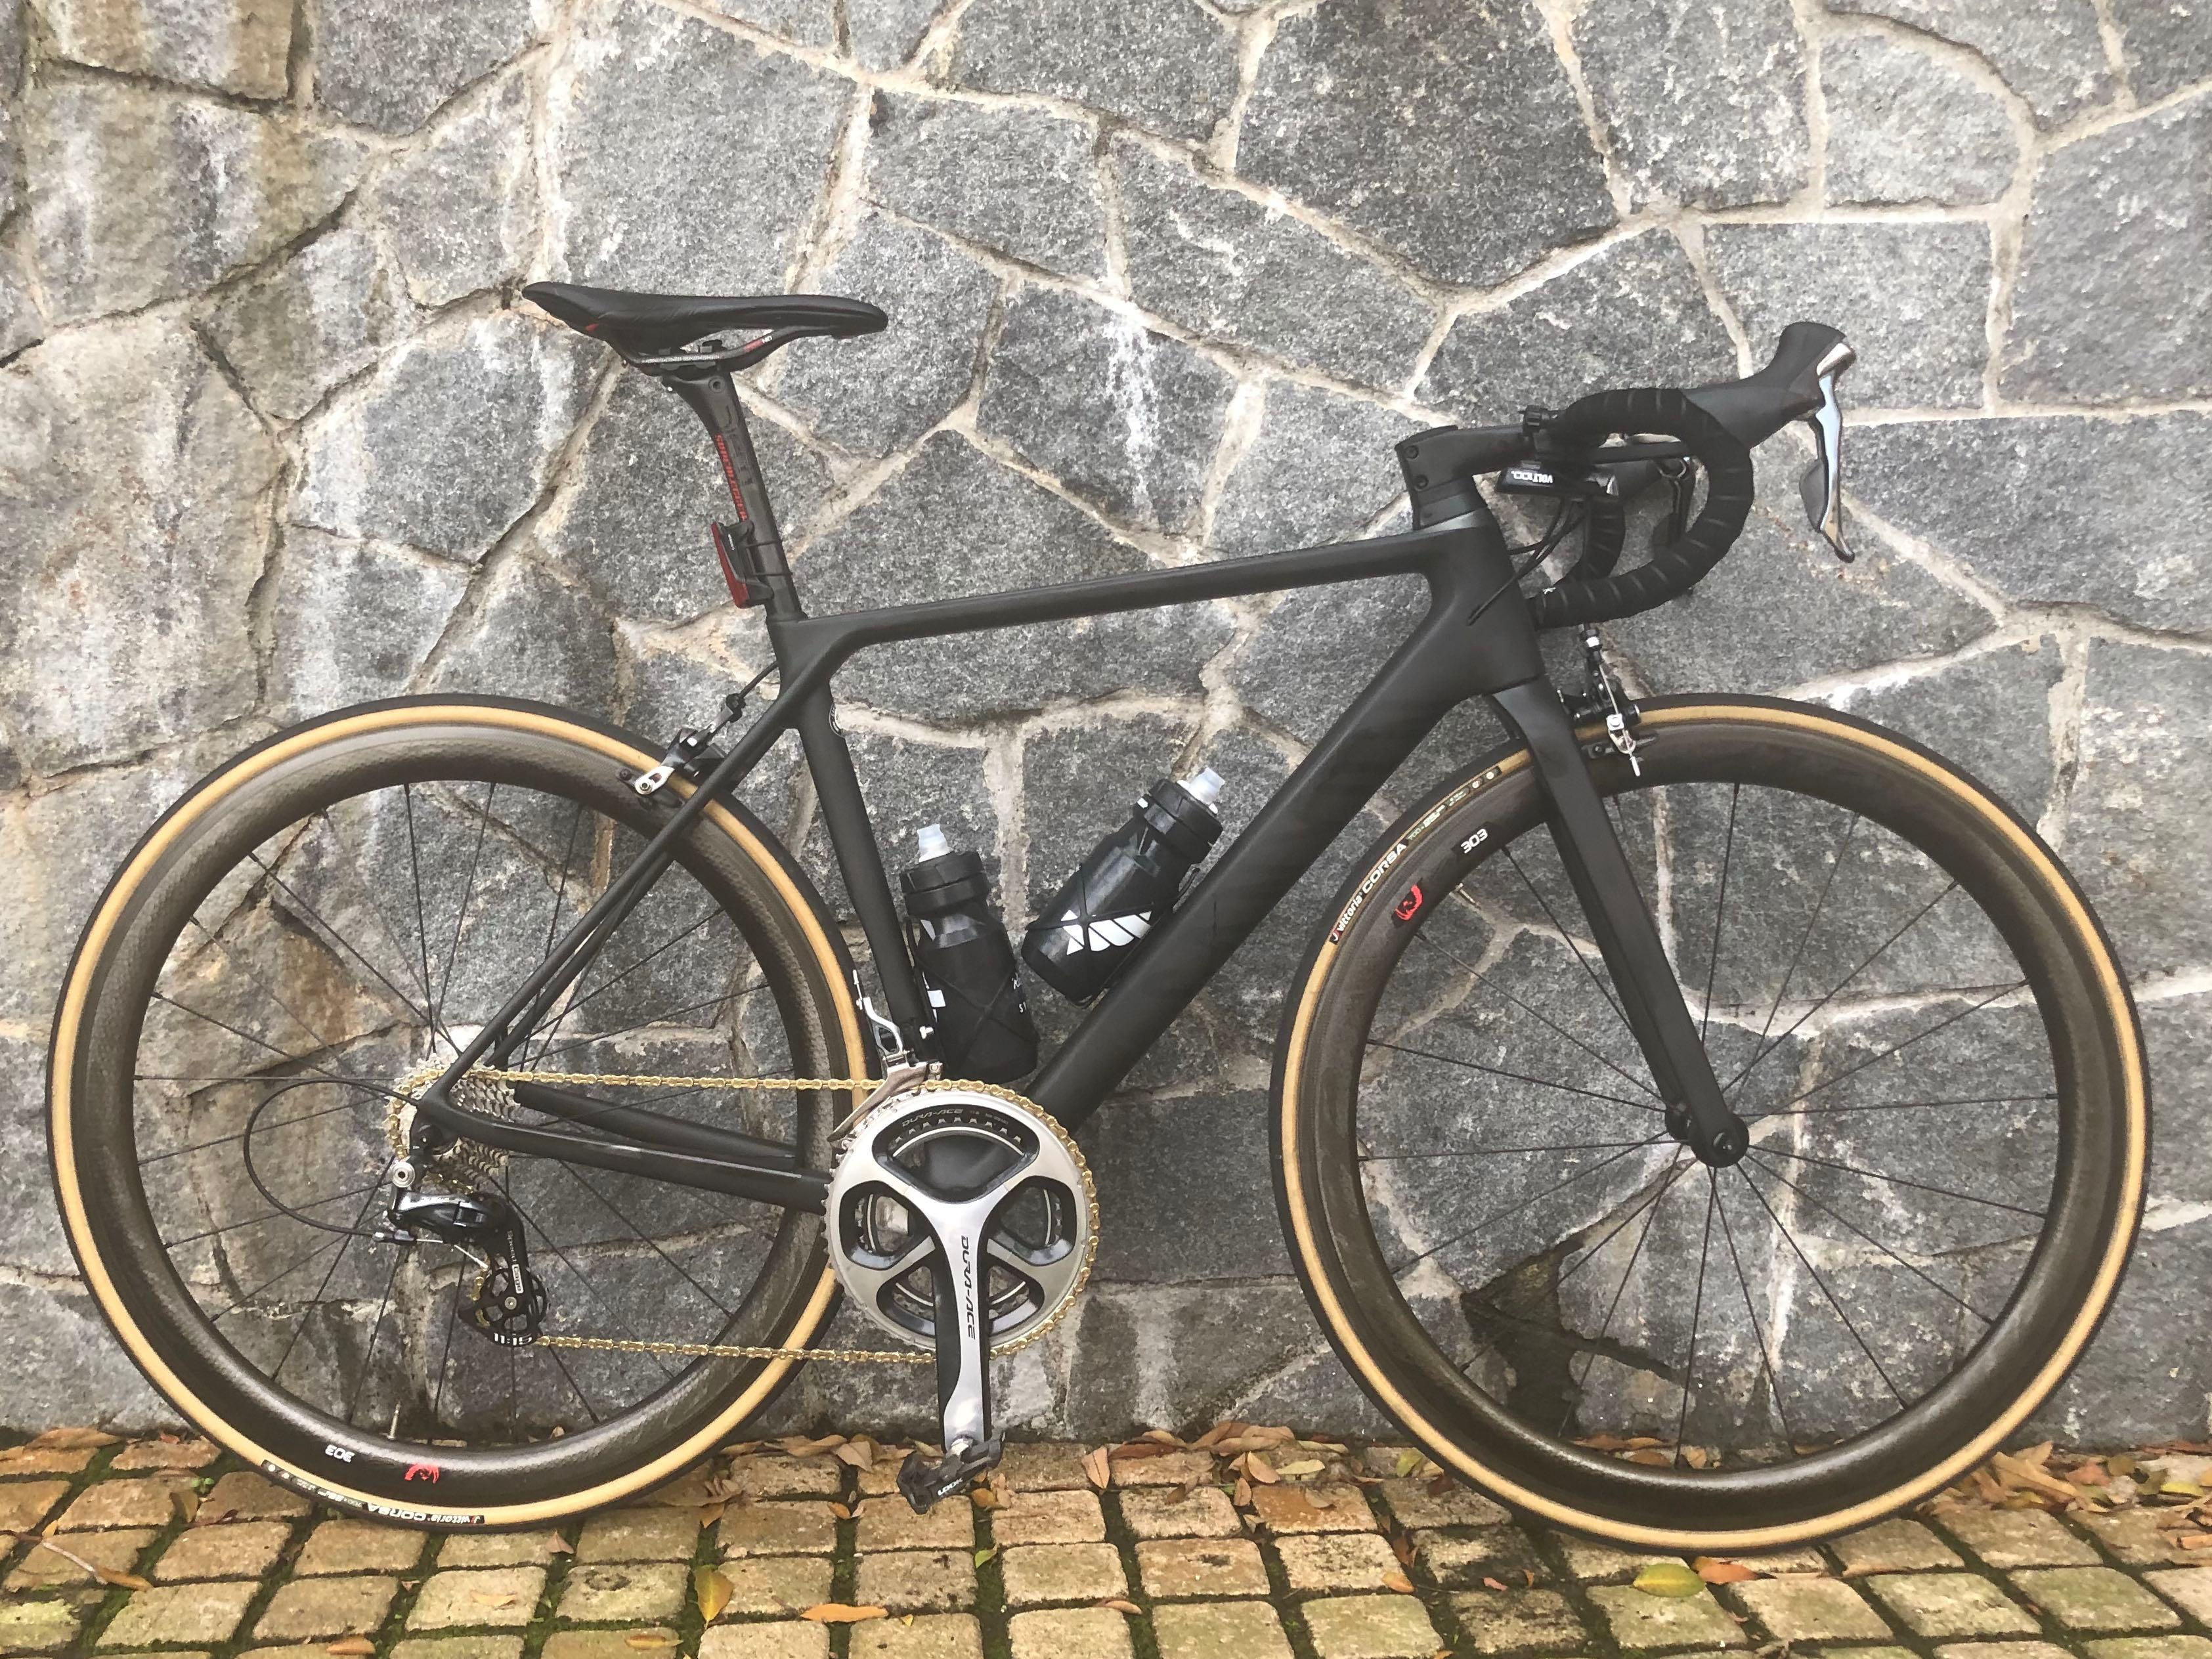 Canyon Ultimate CF SLX Size S, Bicycles & PMDs, Bicycles